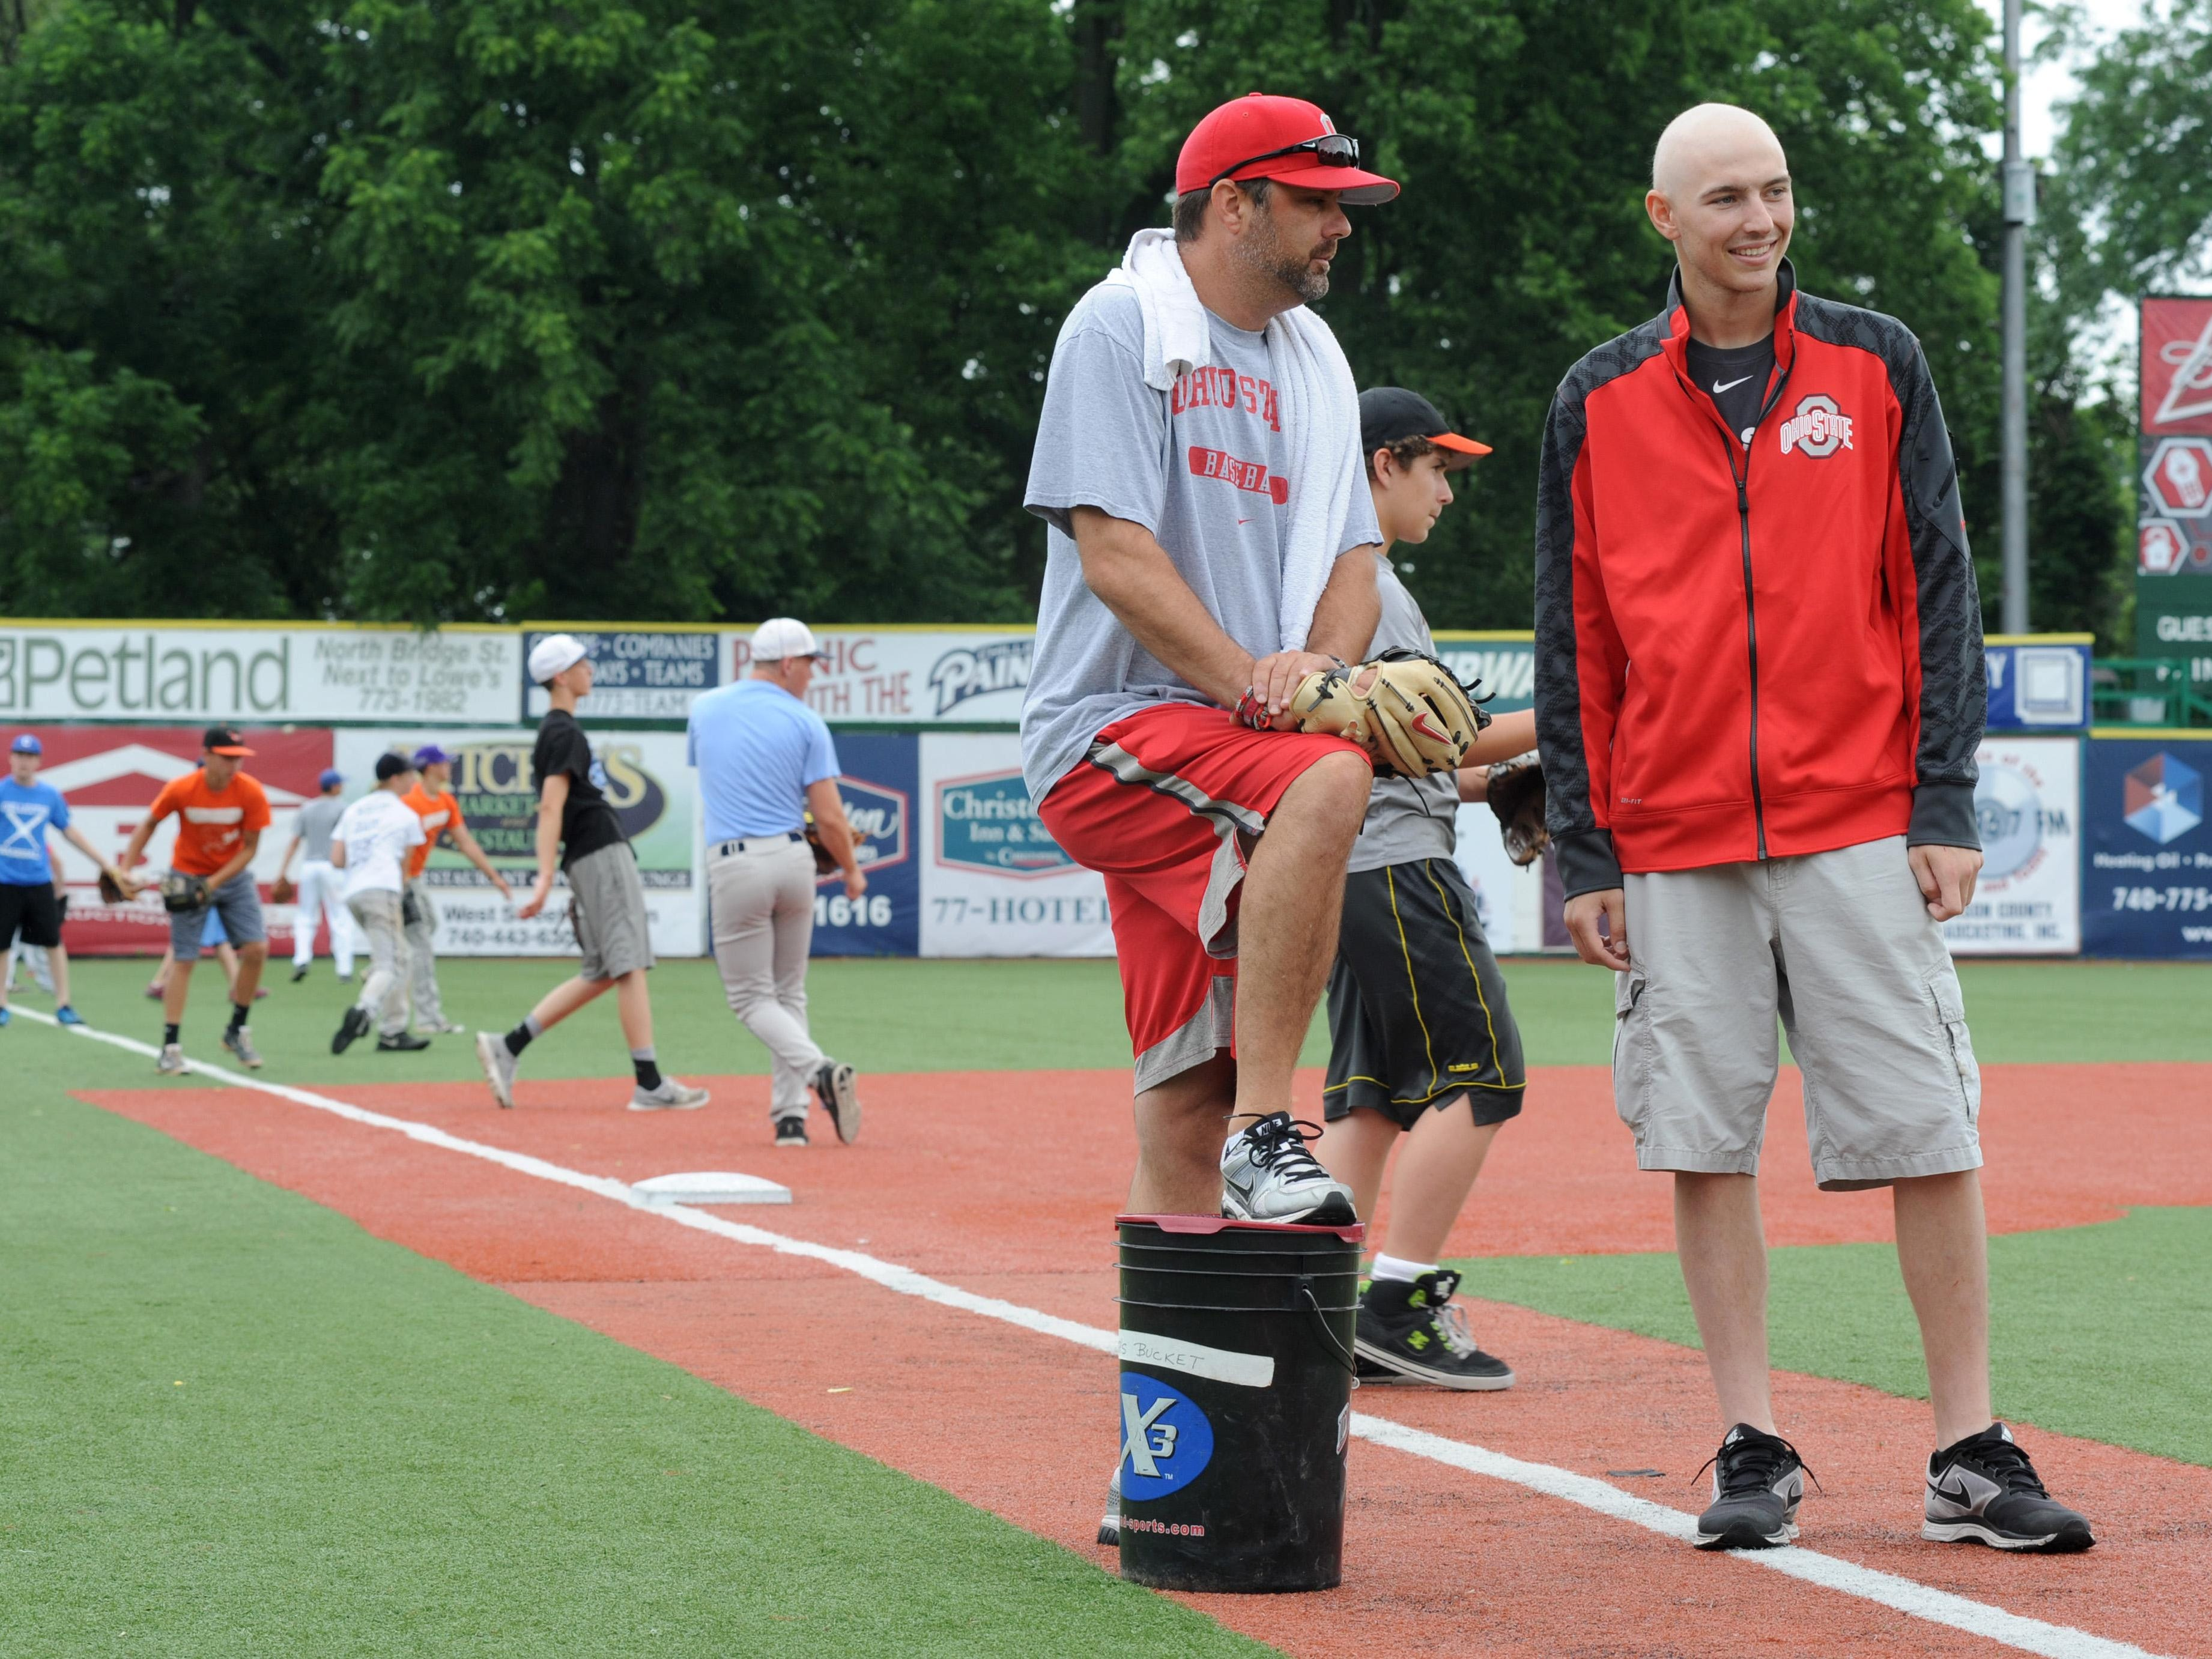 Former Piketon and Ohio State pitcher Zach Farmer, right, talks with Buckeye pitching coach Mike Stafford during the Zach Farmer Strikeout Leukemia pitching camp in June at V.A. Memorial Stadium. Farmer, a former Piketon and Ohio State star pitcher, has died after a 15-month battle with acute myeloid leukemia.